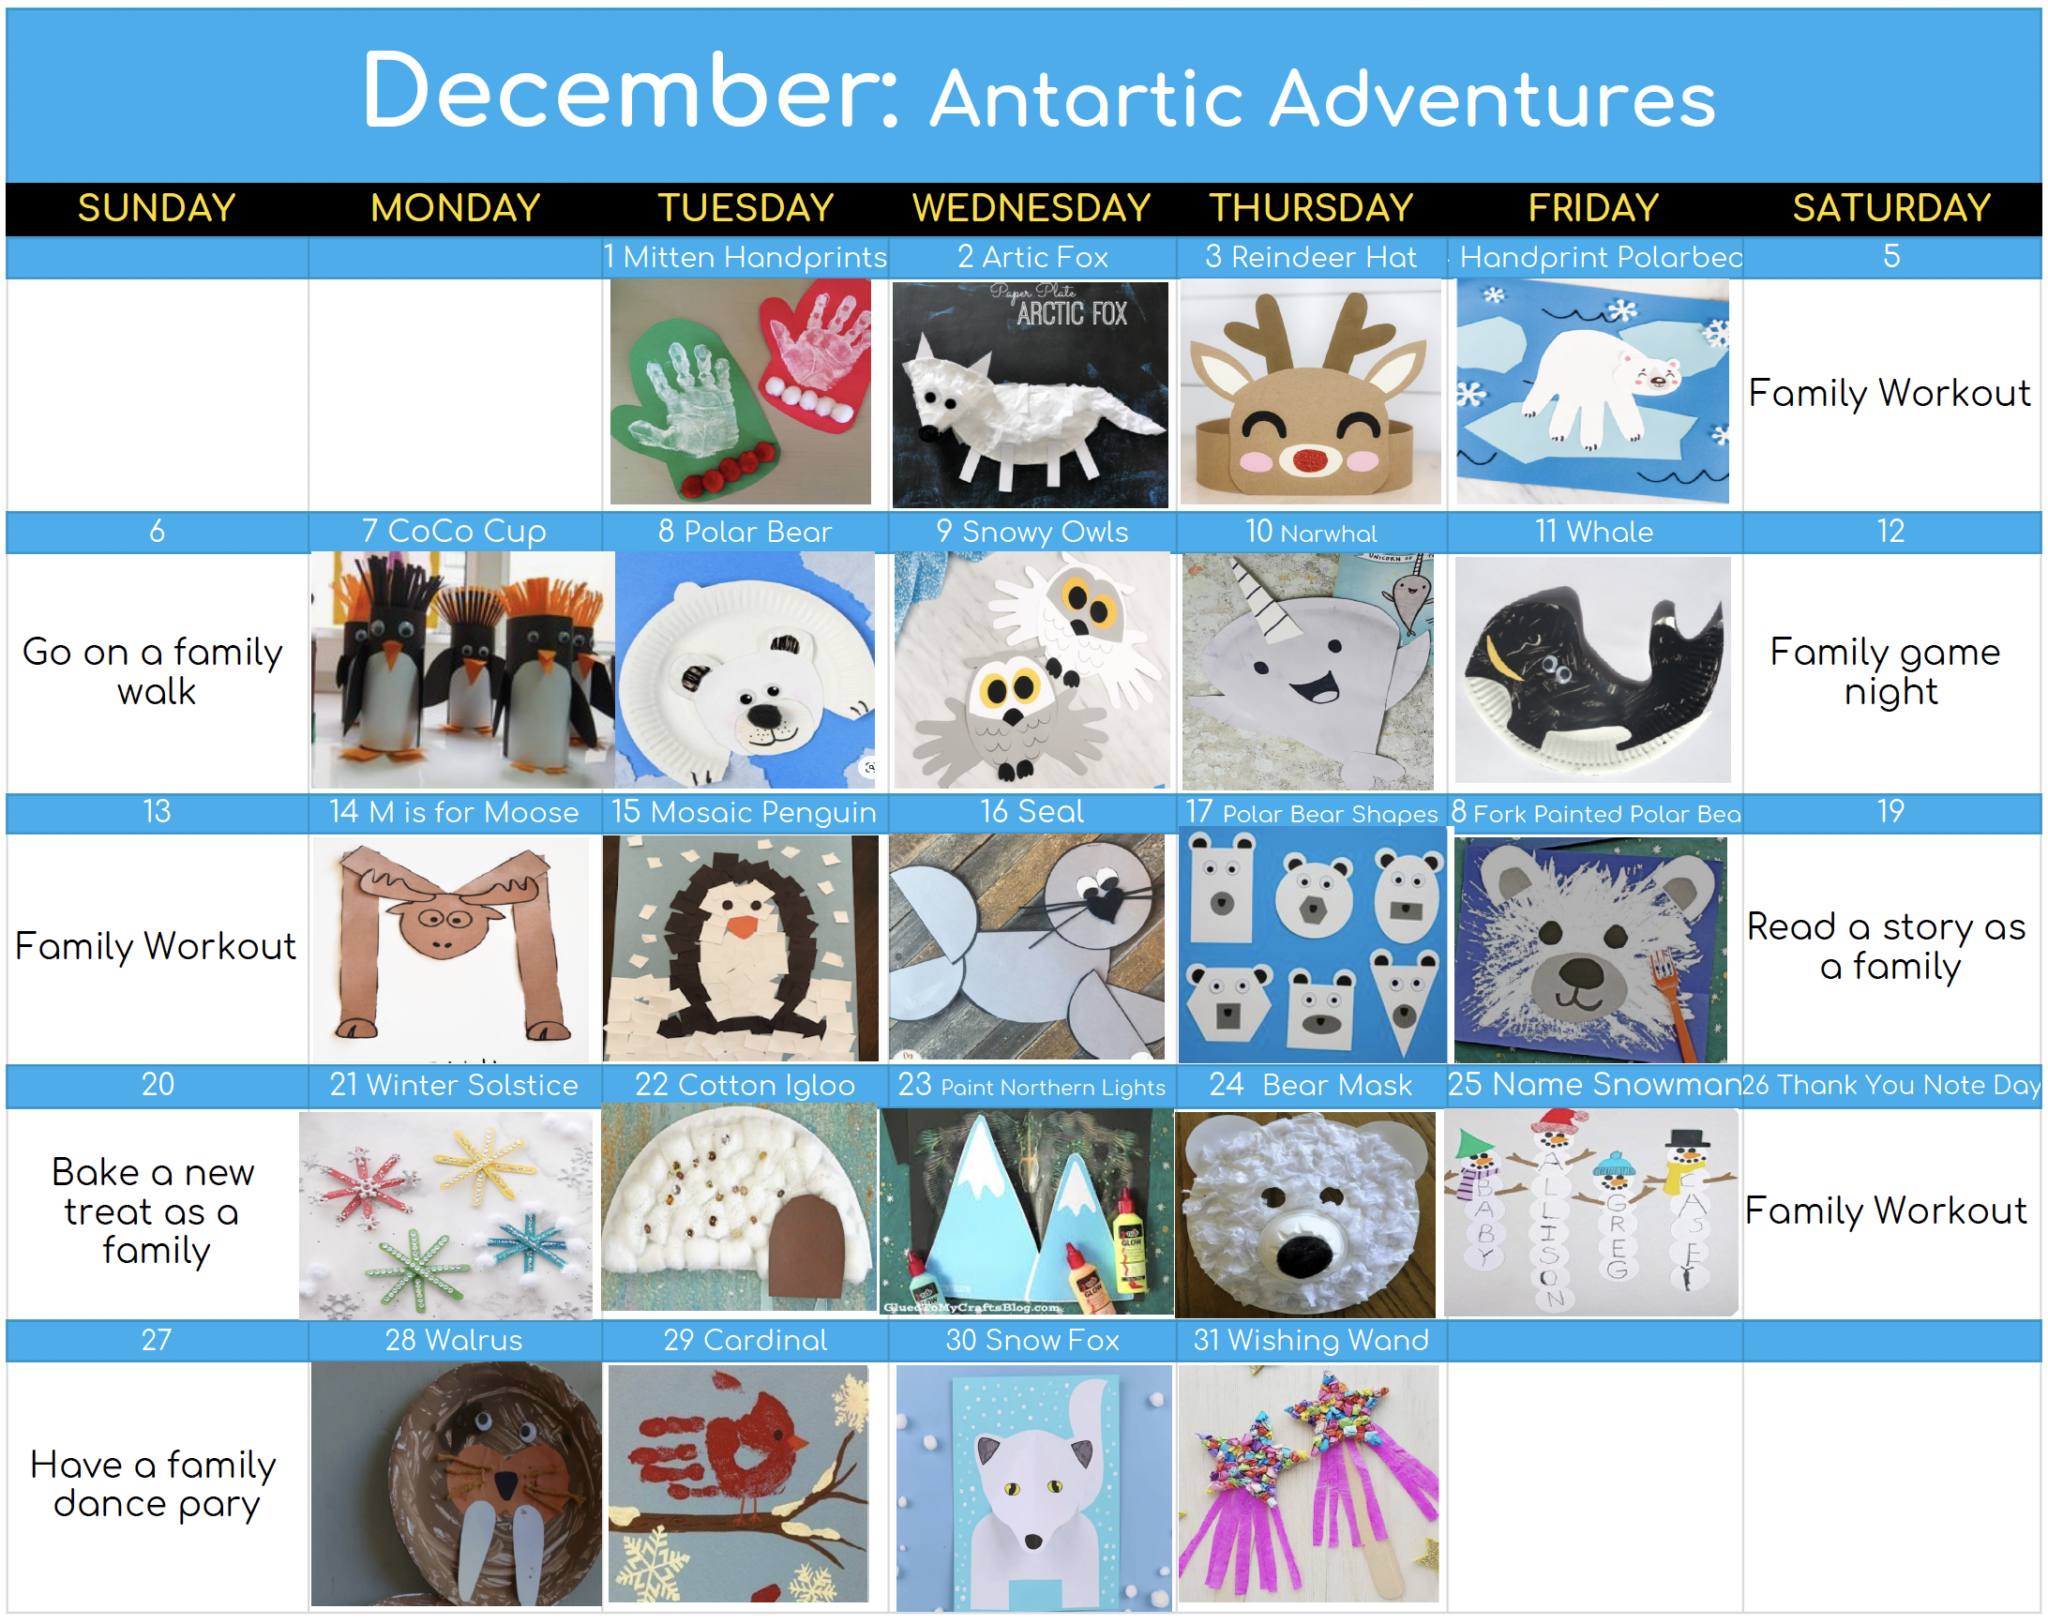 A calendar of December 2020 showing different crafts to do each day